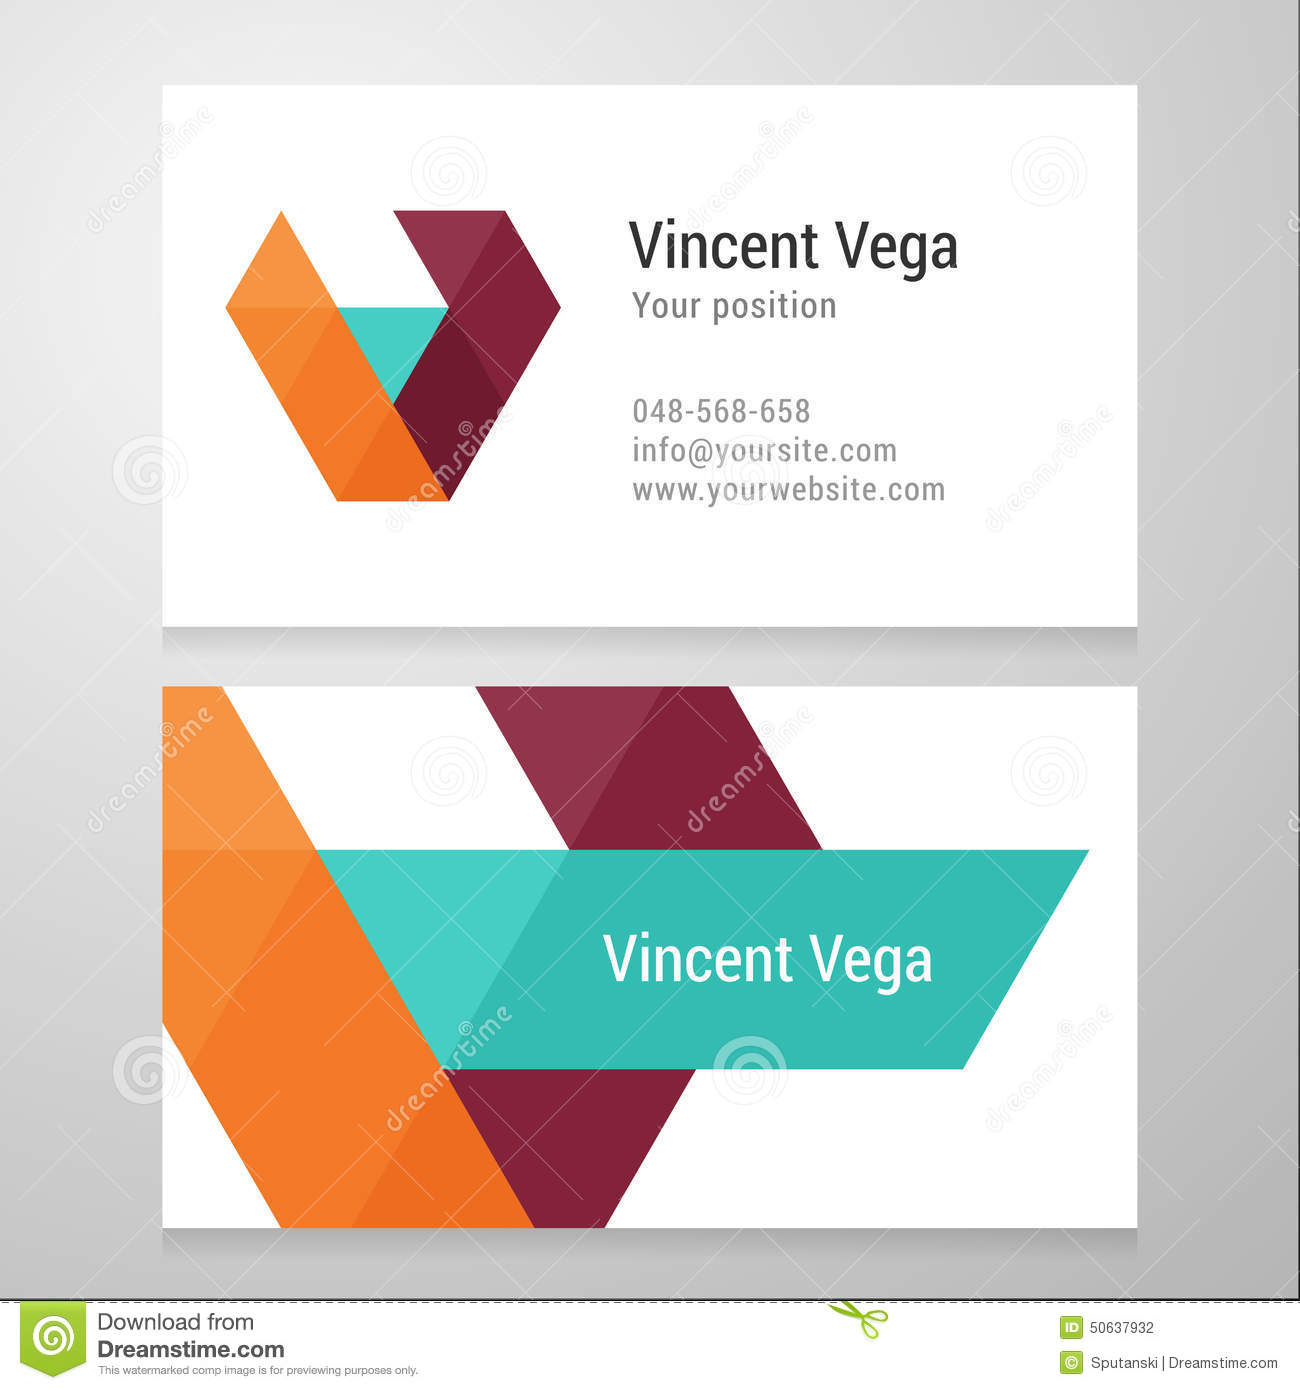 Great 1 Circle Template Small 10 Best Resumes Rectangular 10 Hour Schedule Templates 10 Steps To Creating An Effective Resume Old 10 Words Not To Put On Your Resume Soft100 Dollar Bill Template Modern Letter V Business Card Template Stock Vector   Image: 50637932